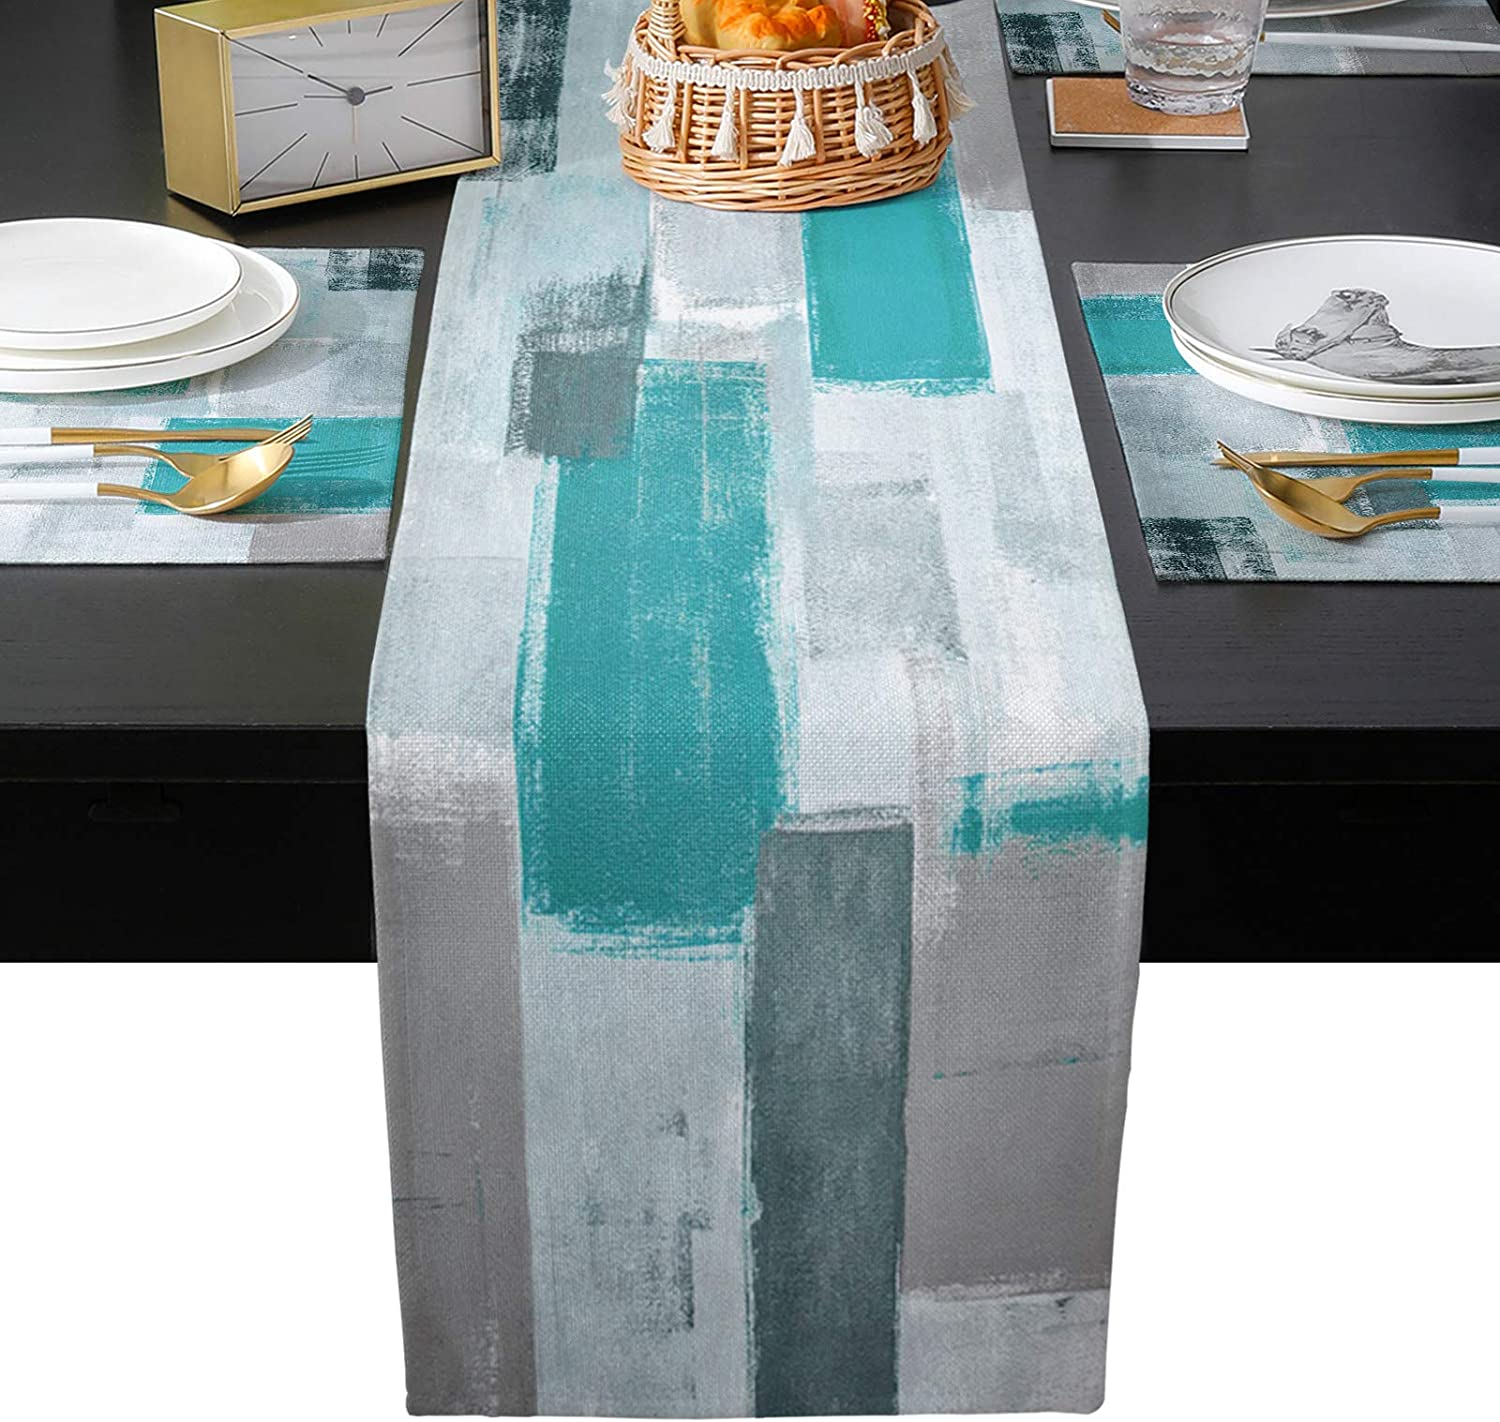 Cloud Max San Antonio Mall 52% OFF Dream Home Table Runner Sets Grey Placemats Teal Pa with 6